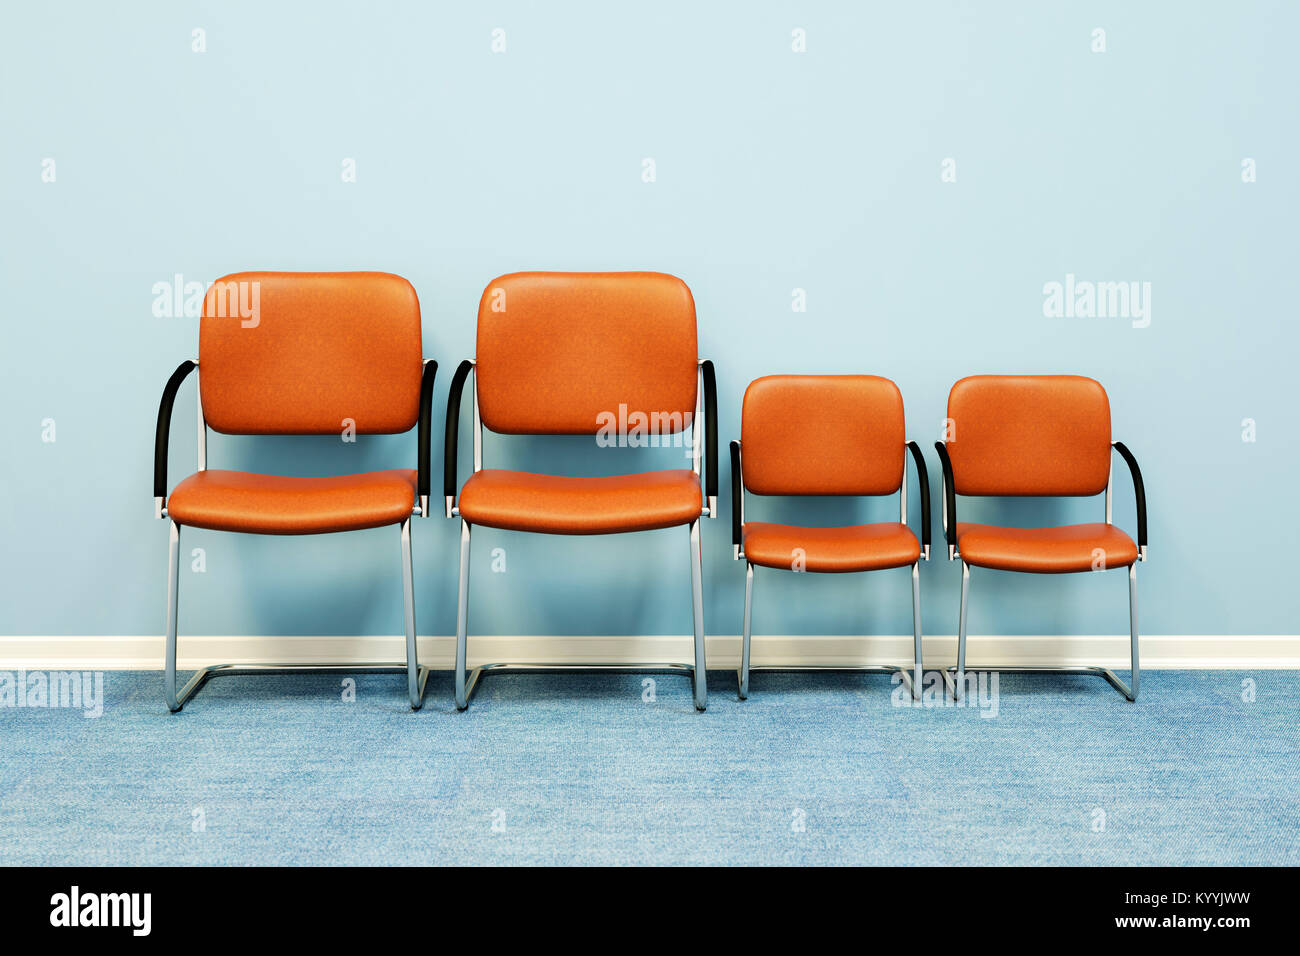 Two large and two small chairs in a row against a wall in an empty room - family concept - Stock Image